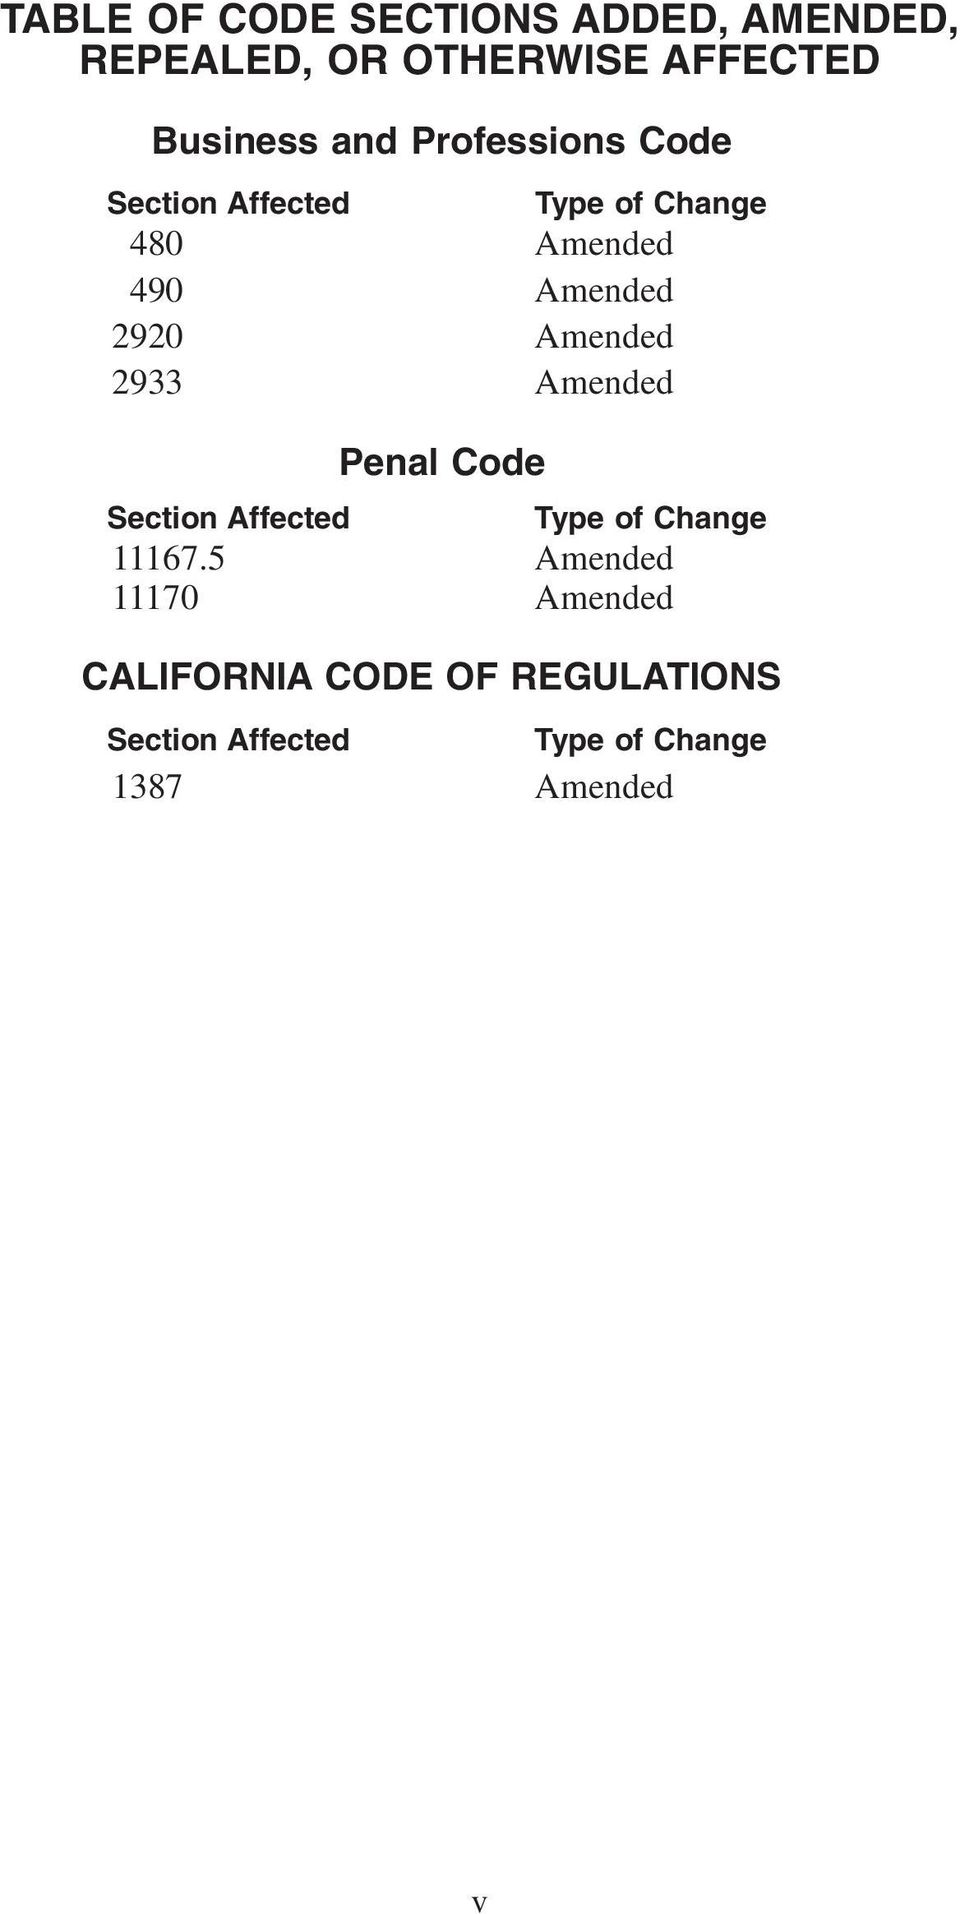 Amended 2933 Amended Penal Code Section Affected Type of Change 11167.